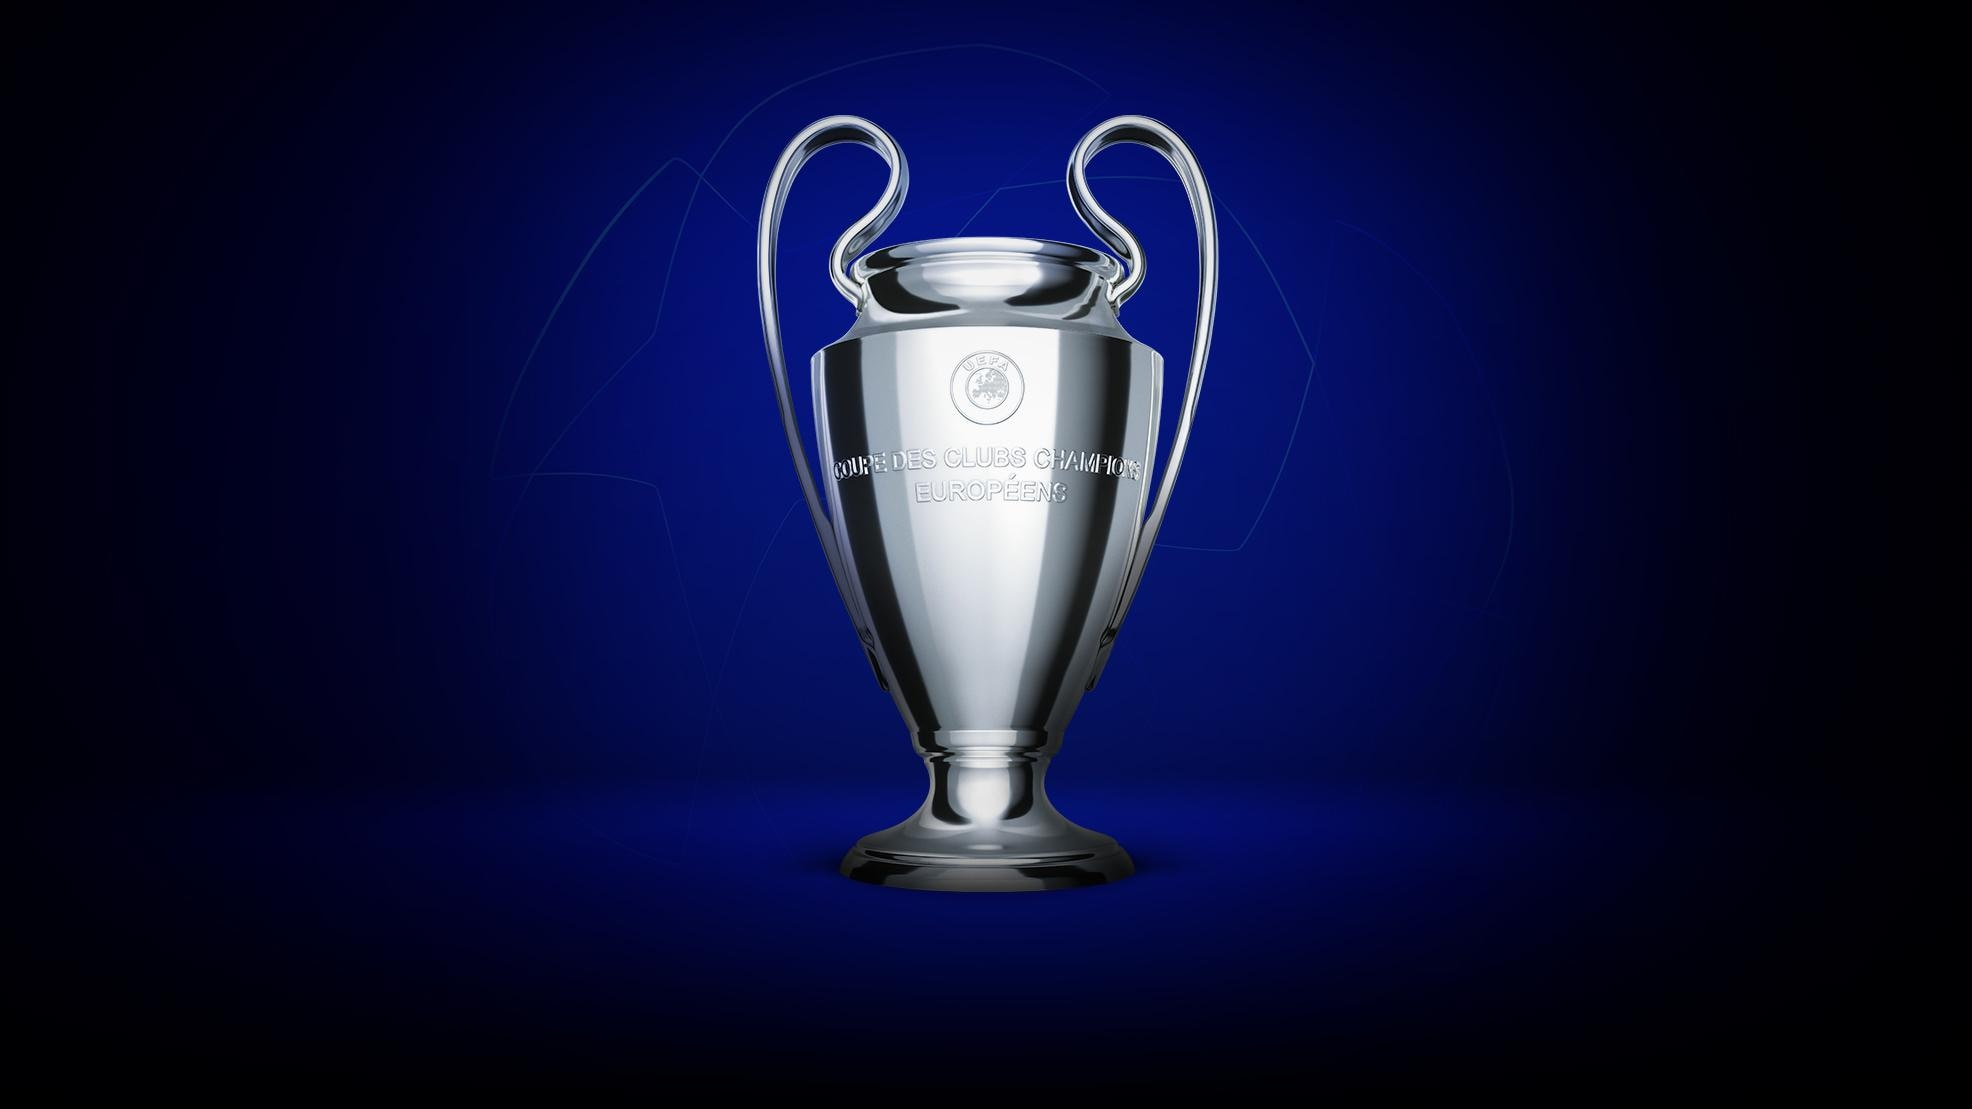 champions league to resume on 7 august uefa champions league uefa com uefa champions league